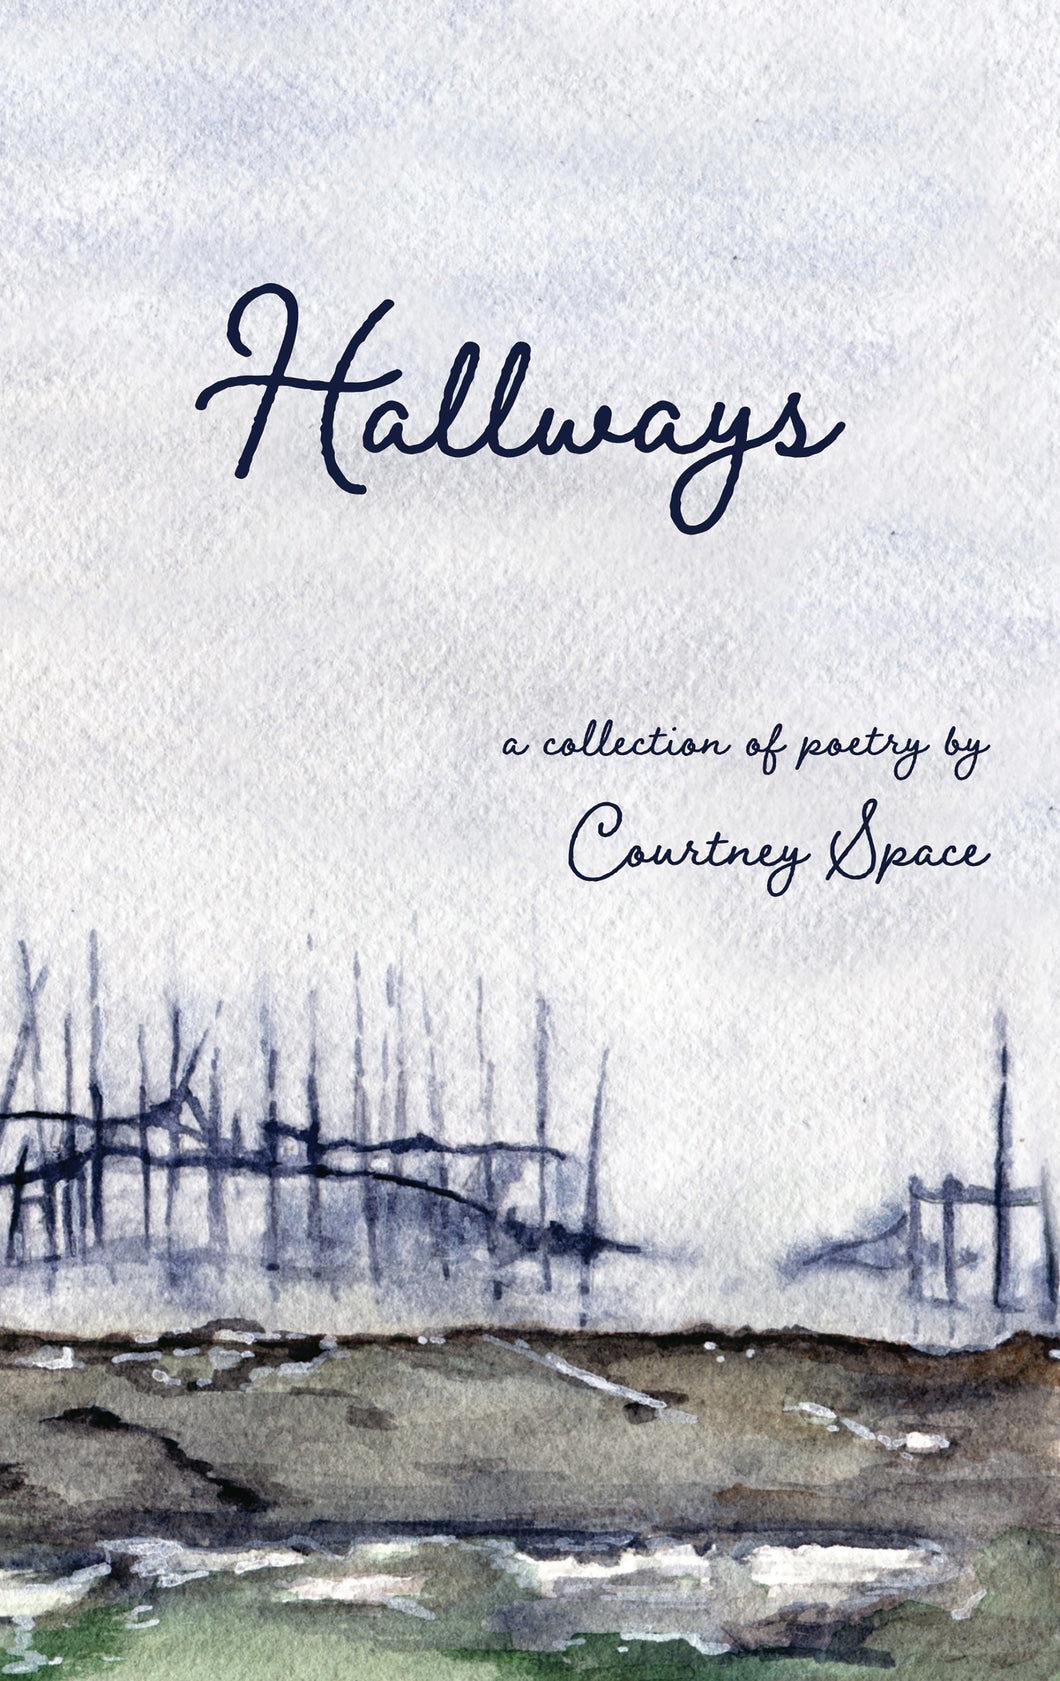 Hallways: a collection of poetry by Courtney Space - eBook